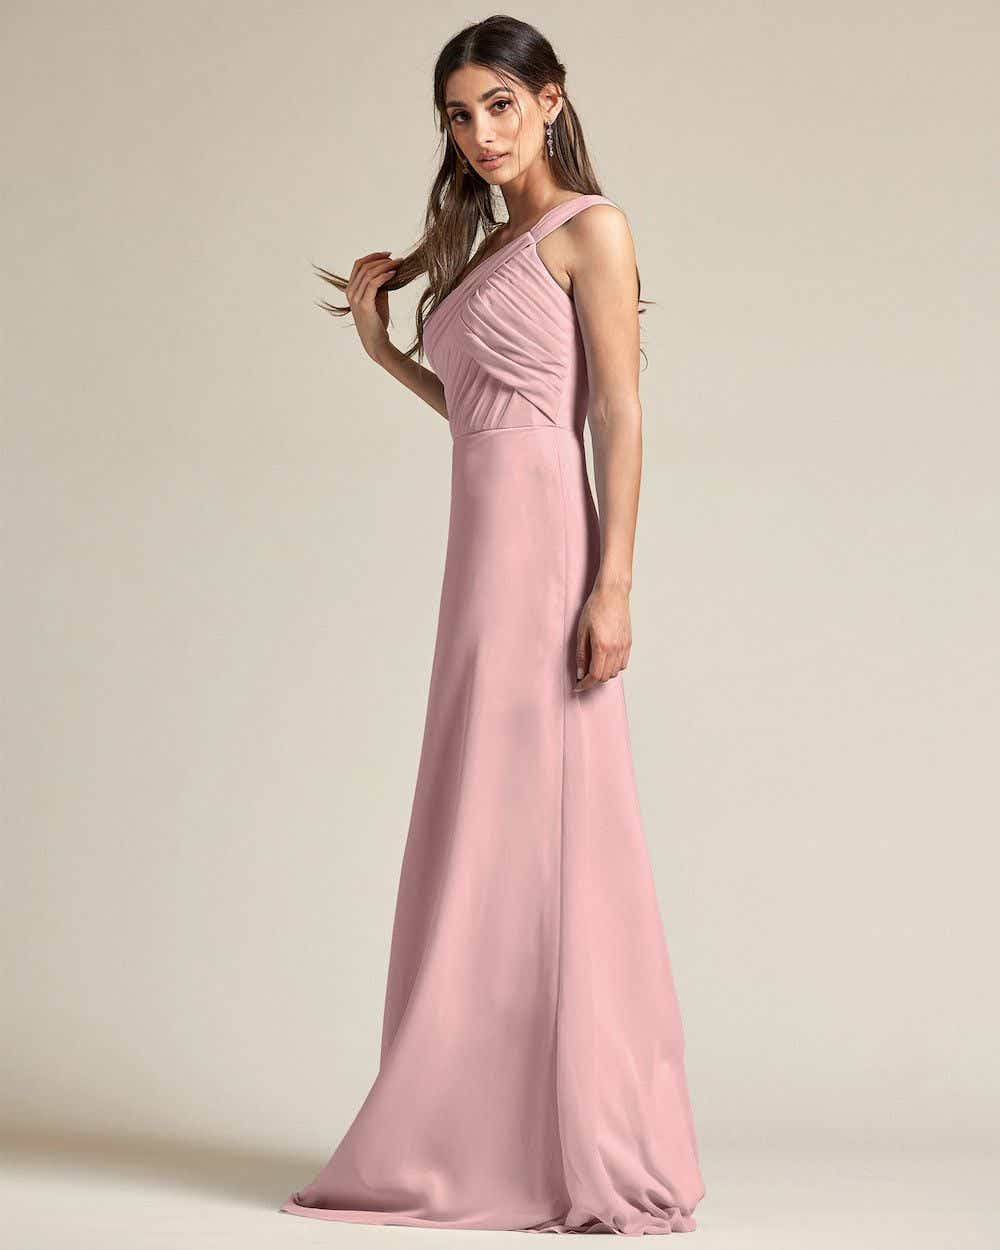 One Shoulder Strap Pleated Top Long Skirt Maid of Honor Dress - Side